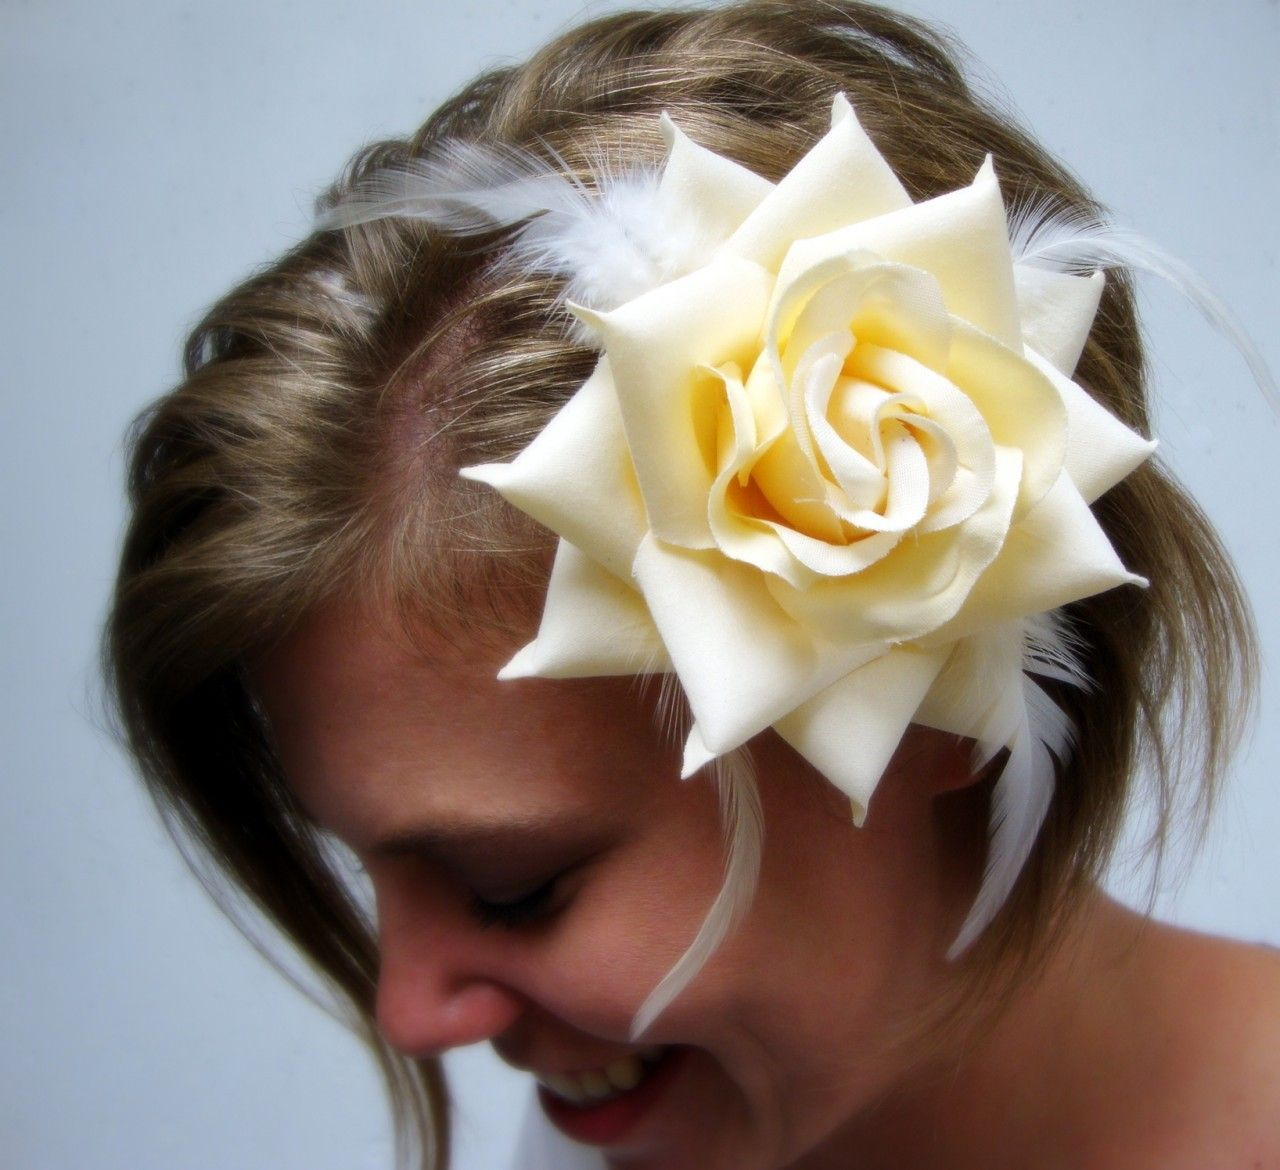 HairFlowers.net - Ivory Rose with Feathers Hair Clip and Pin Back Brooch, $8.99 (http://www.hairflowers.net/hair-flowers/ivory-rose-with-feathers-hair-clip-and-pin-back-brooch.html)